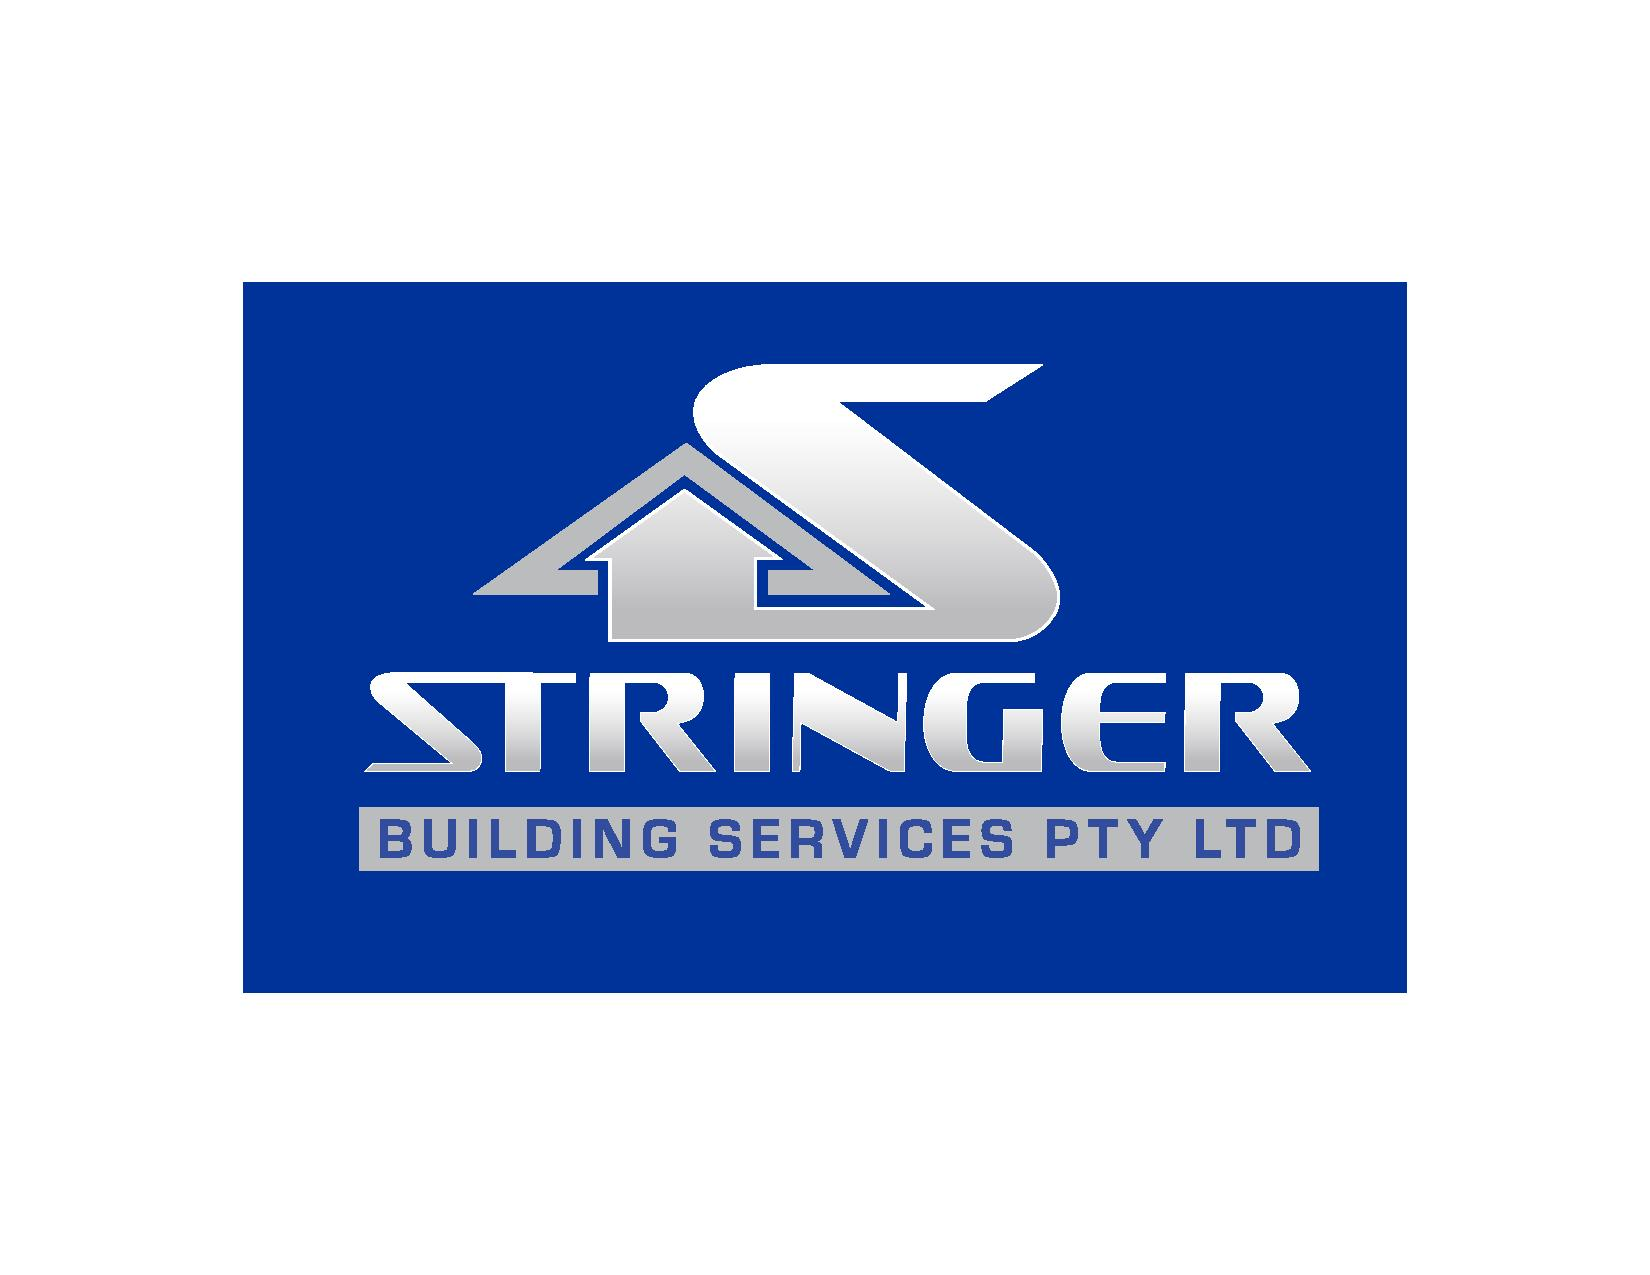 Stringer Building Services